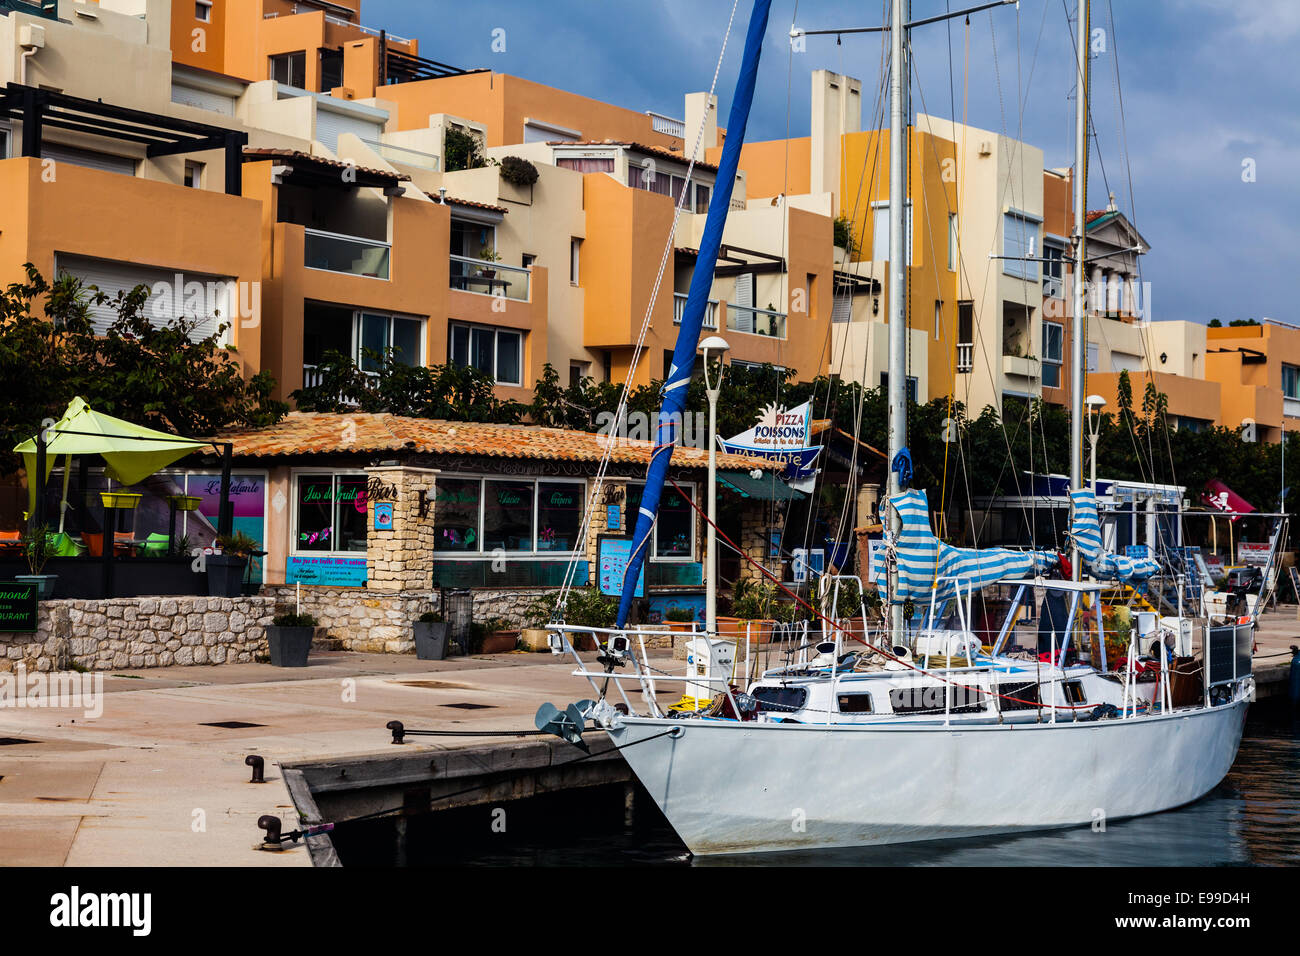 Sailing boat docked in Port Frioul, near Marseille, France. - Stock Image